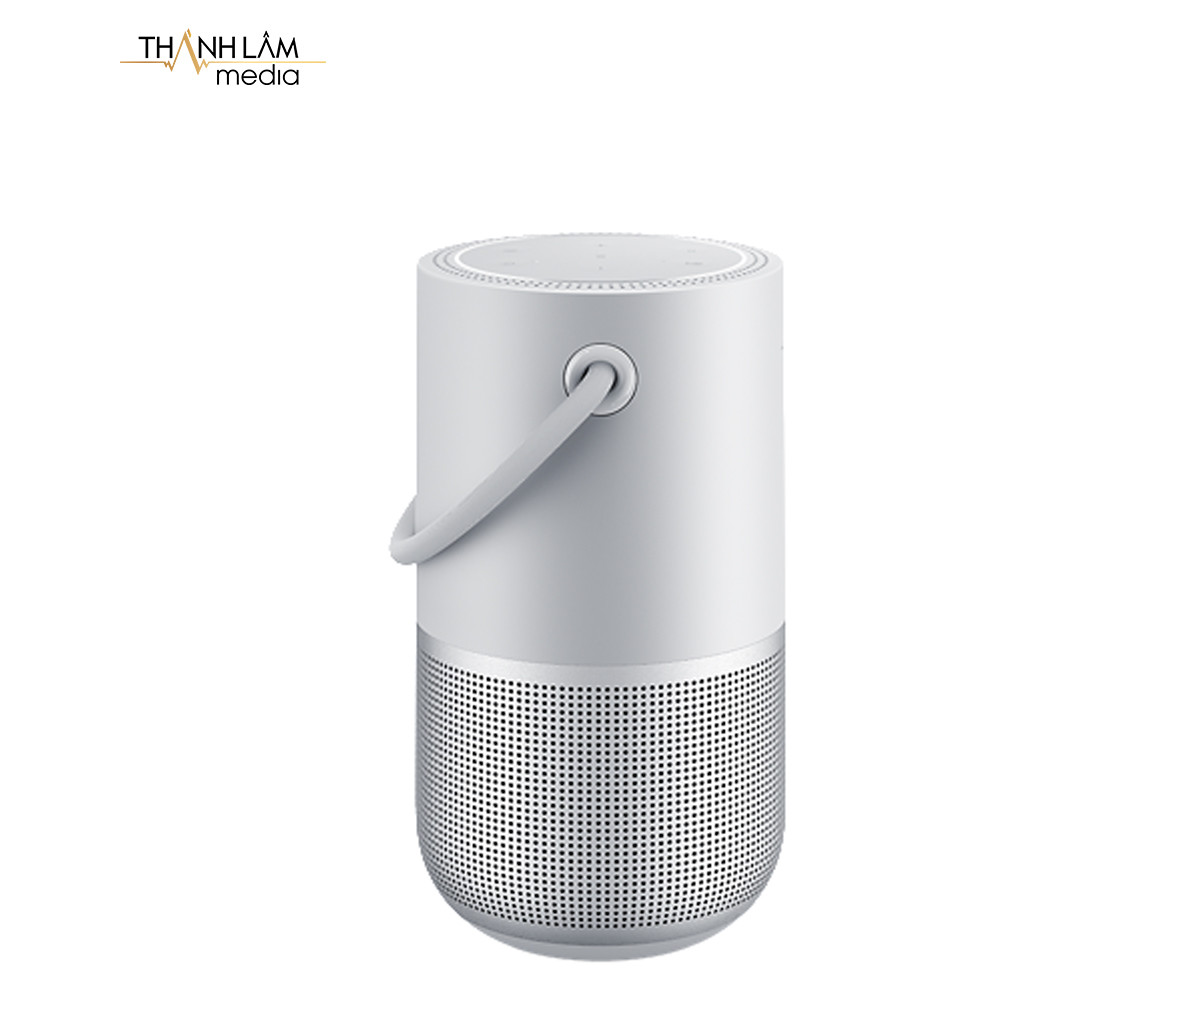 Loa Bose Portable Home Speaker Trang 2